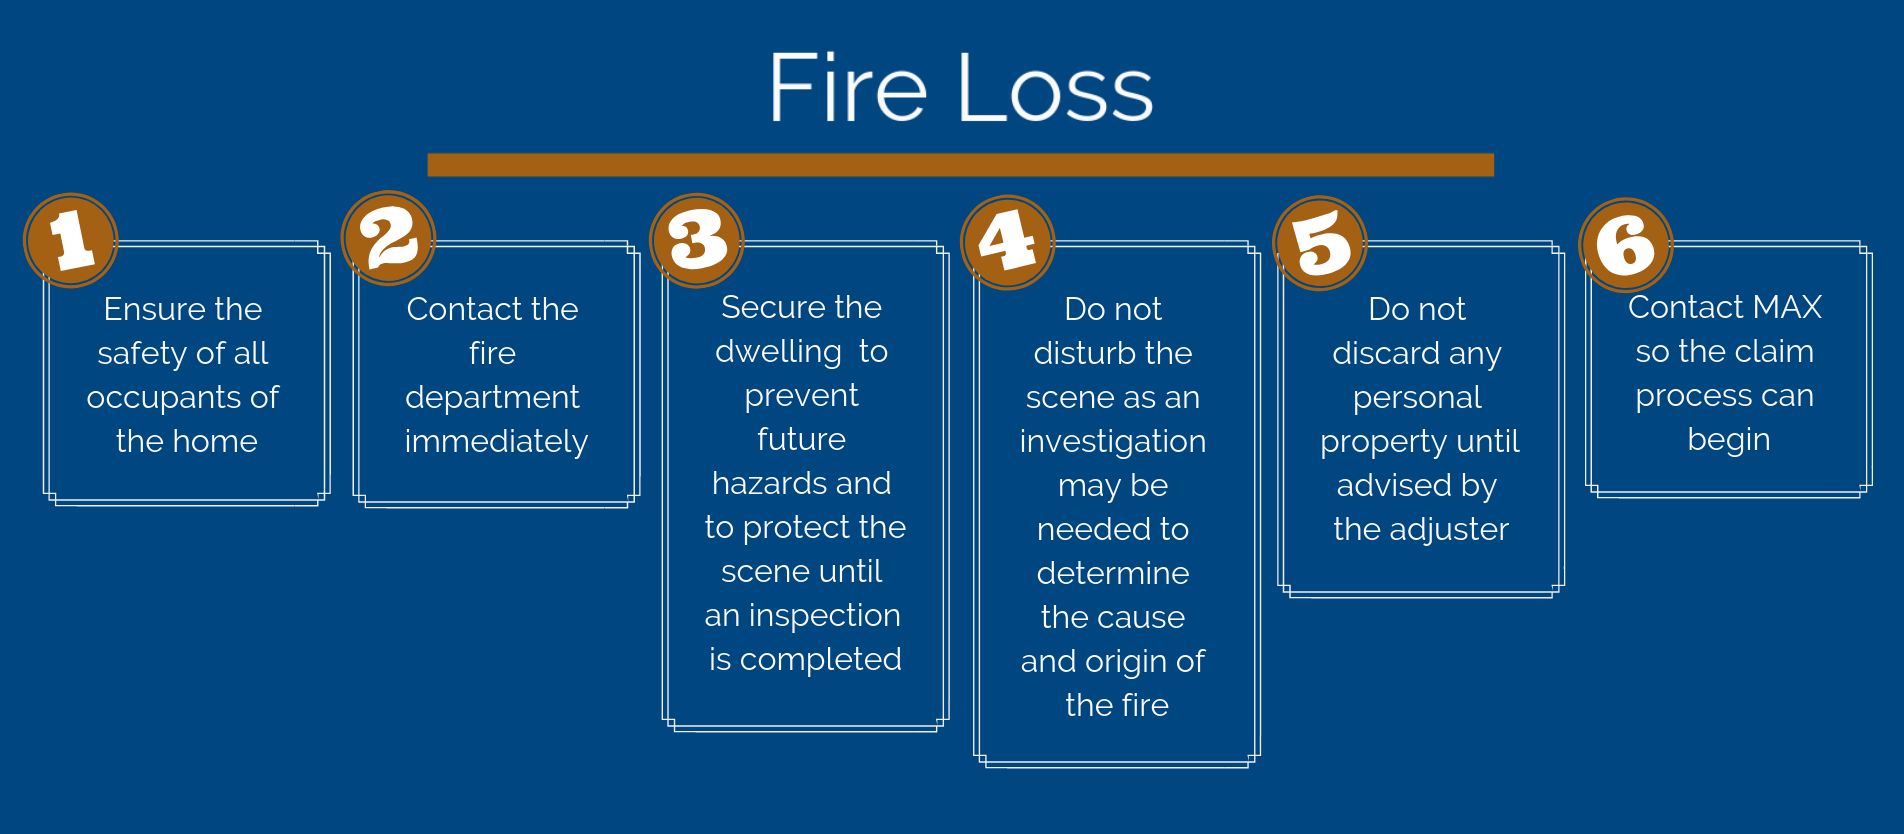 Fire Loss Graphic